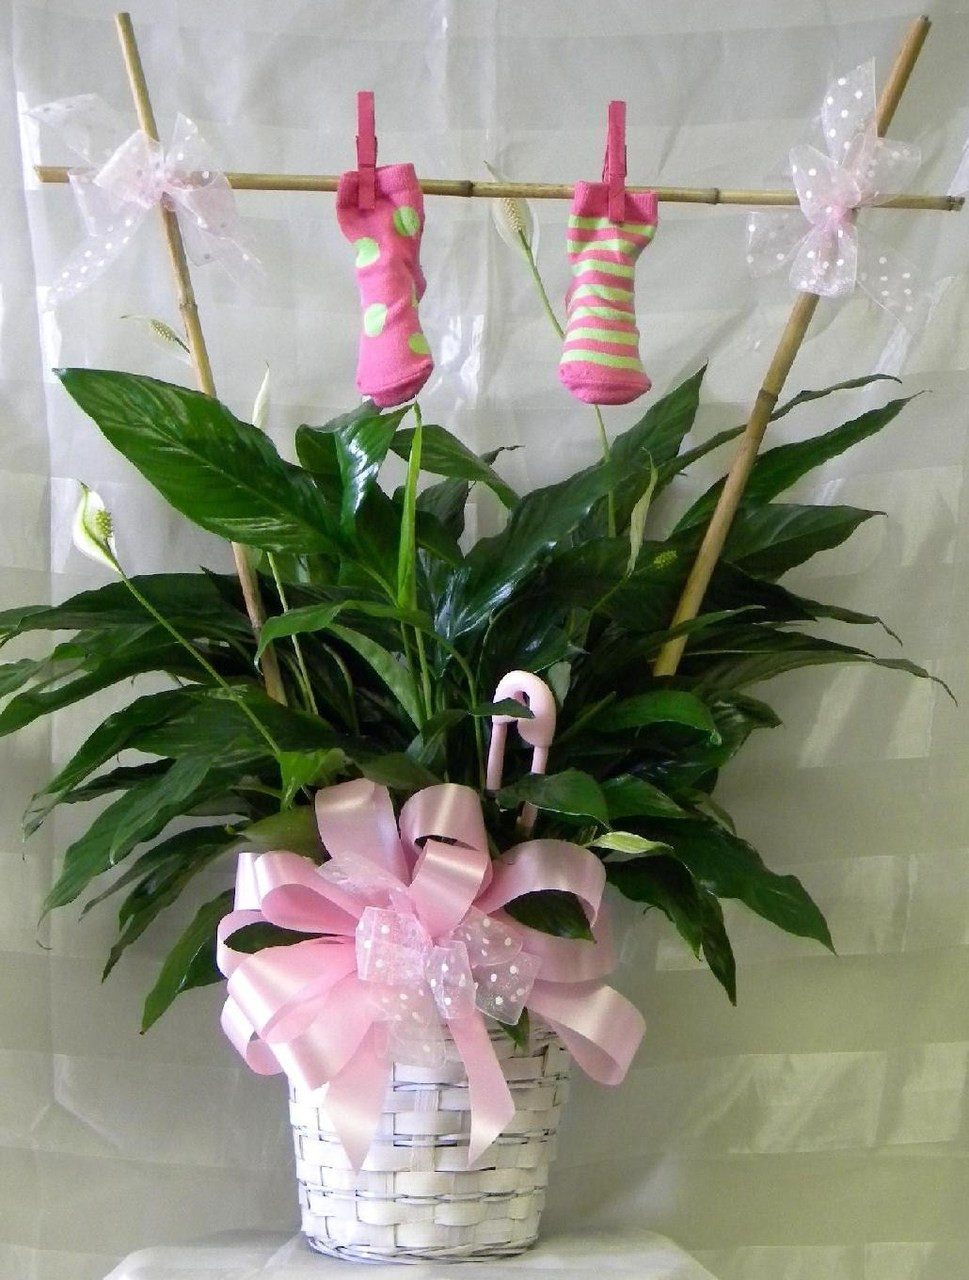 New baby gift green plant new baby gift flowers new baby girl gift plant with clothes line of baby socks an exclusive plant bouquet negle Image collections